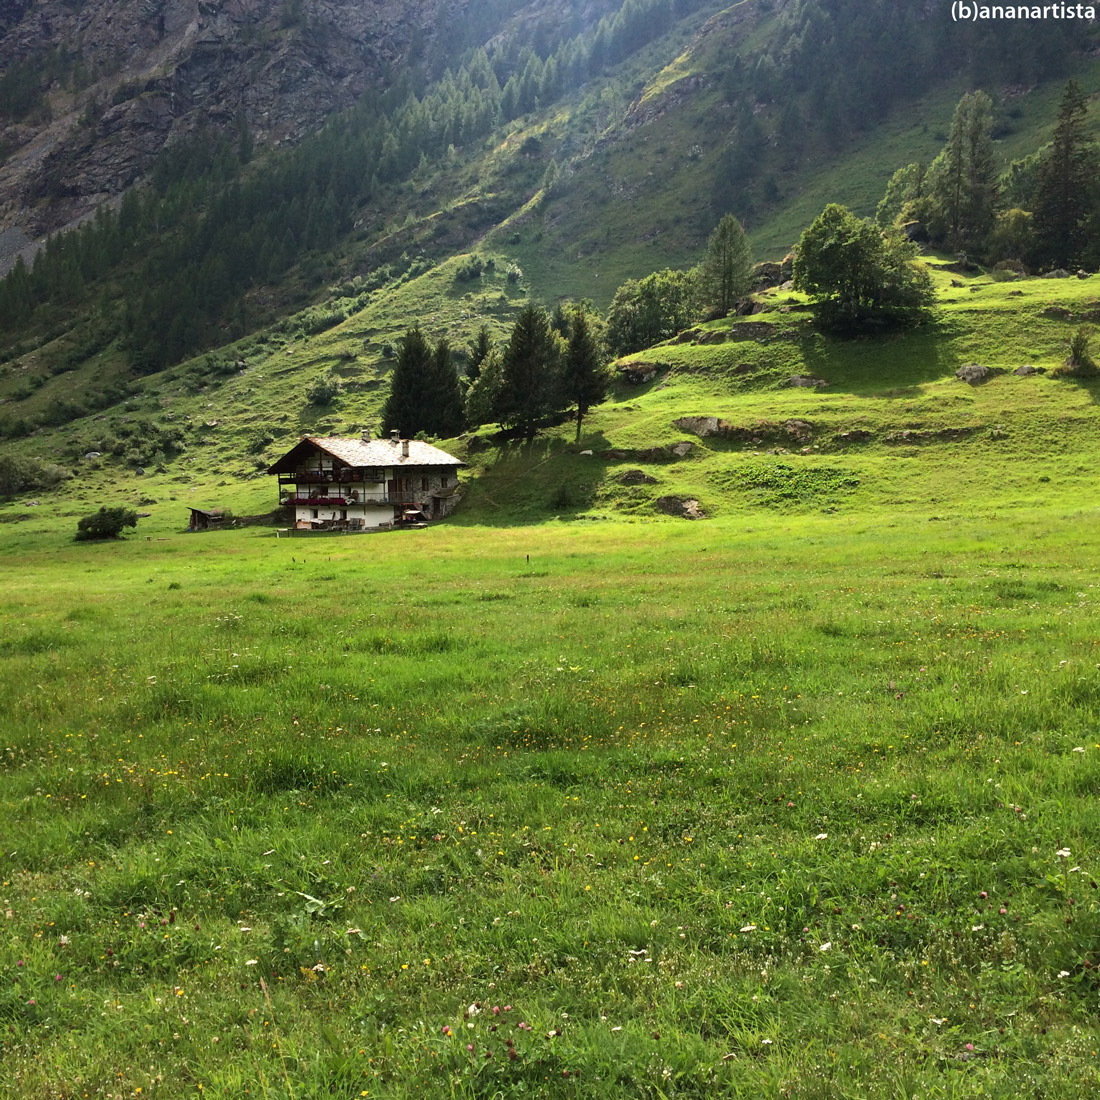 walser house in the alps: photography by (b)ananartista sbuff